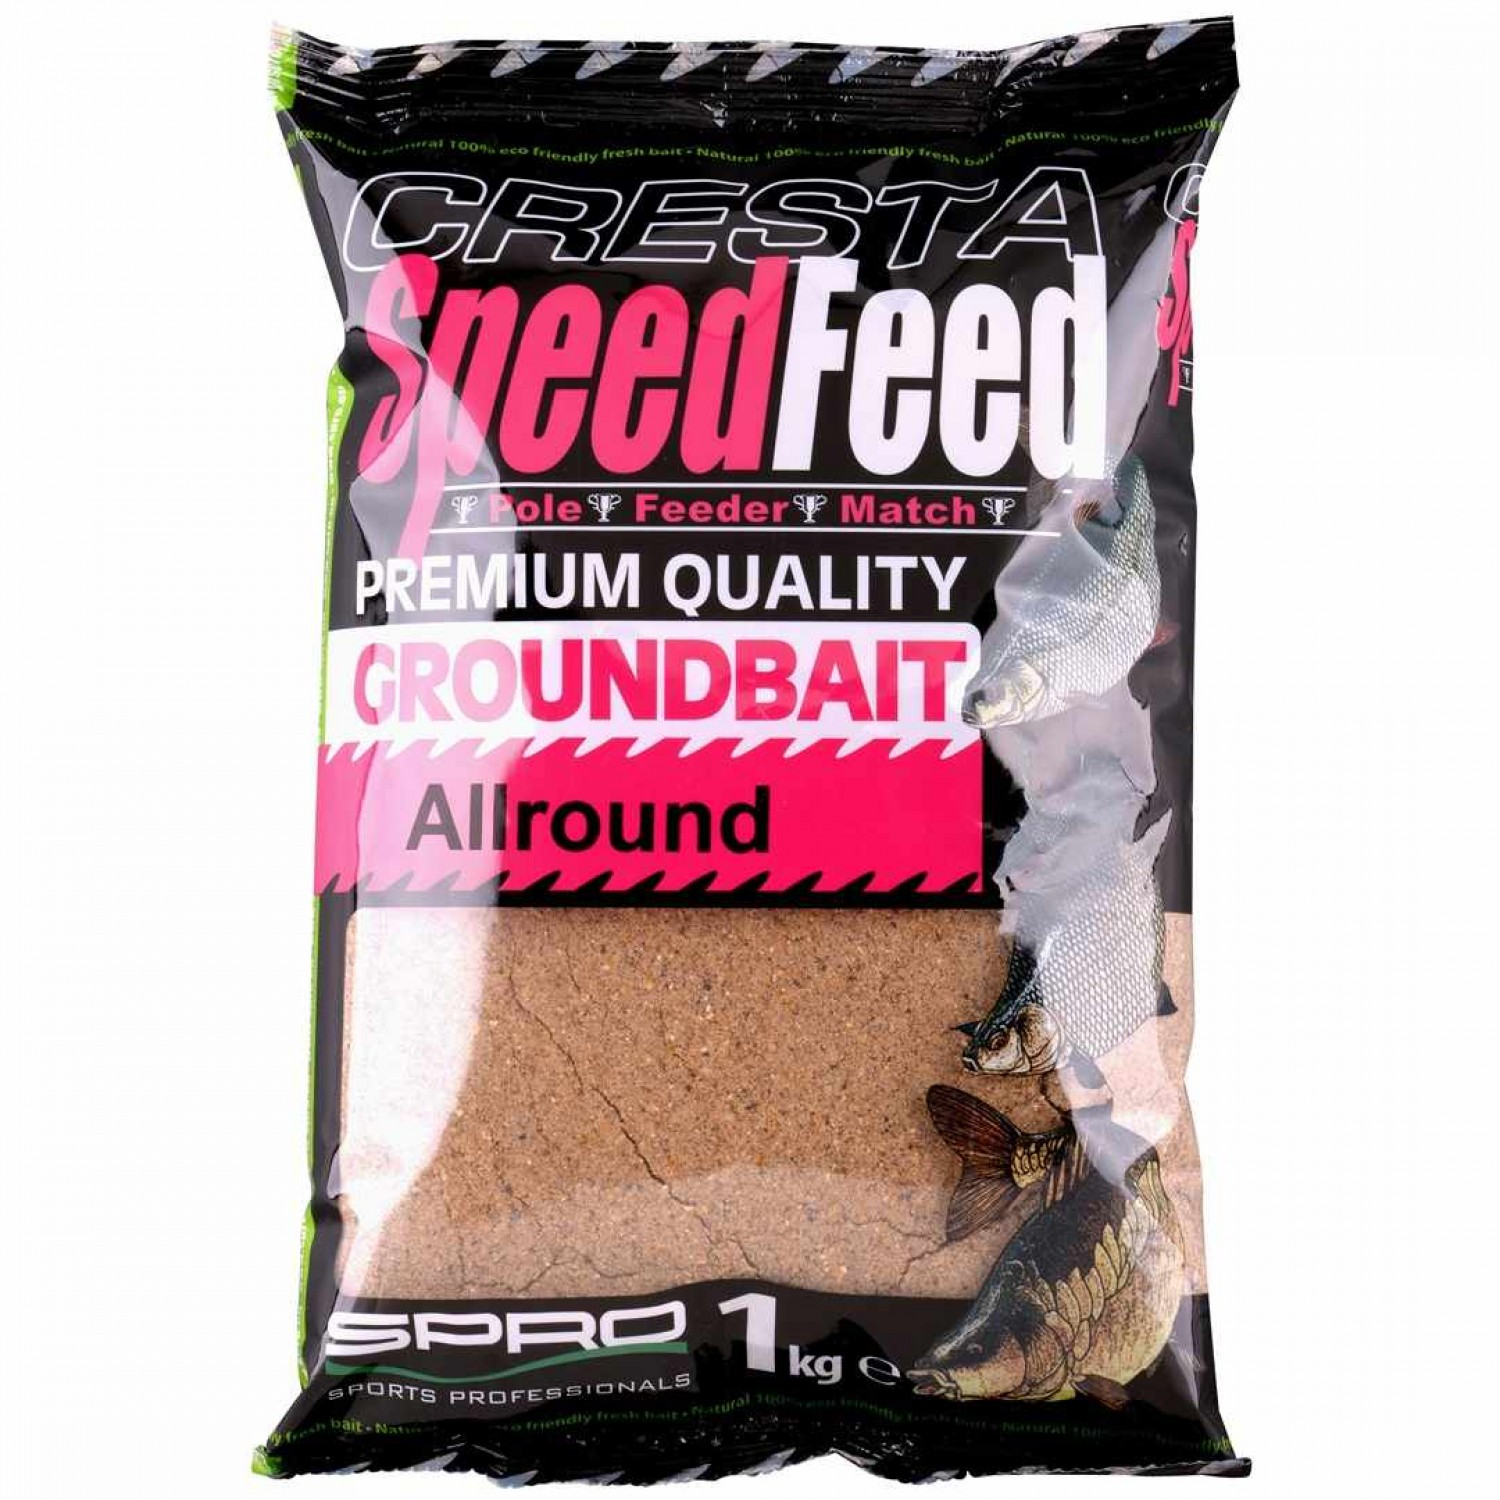 Spro Cresta Speedfeed Groundbait Allround 1kg